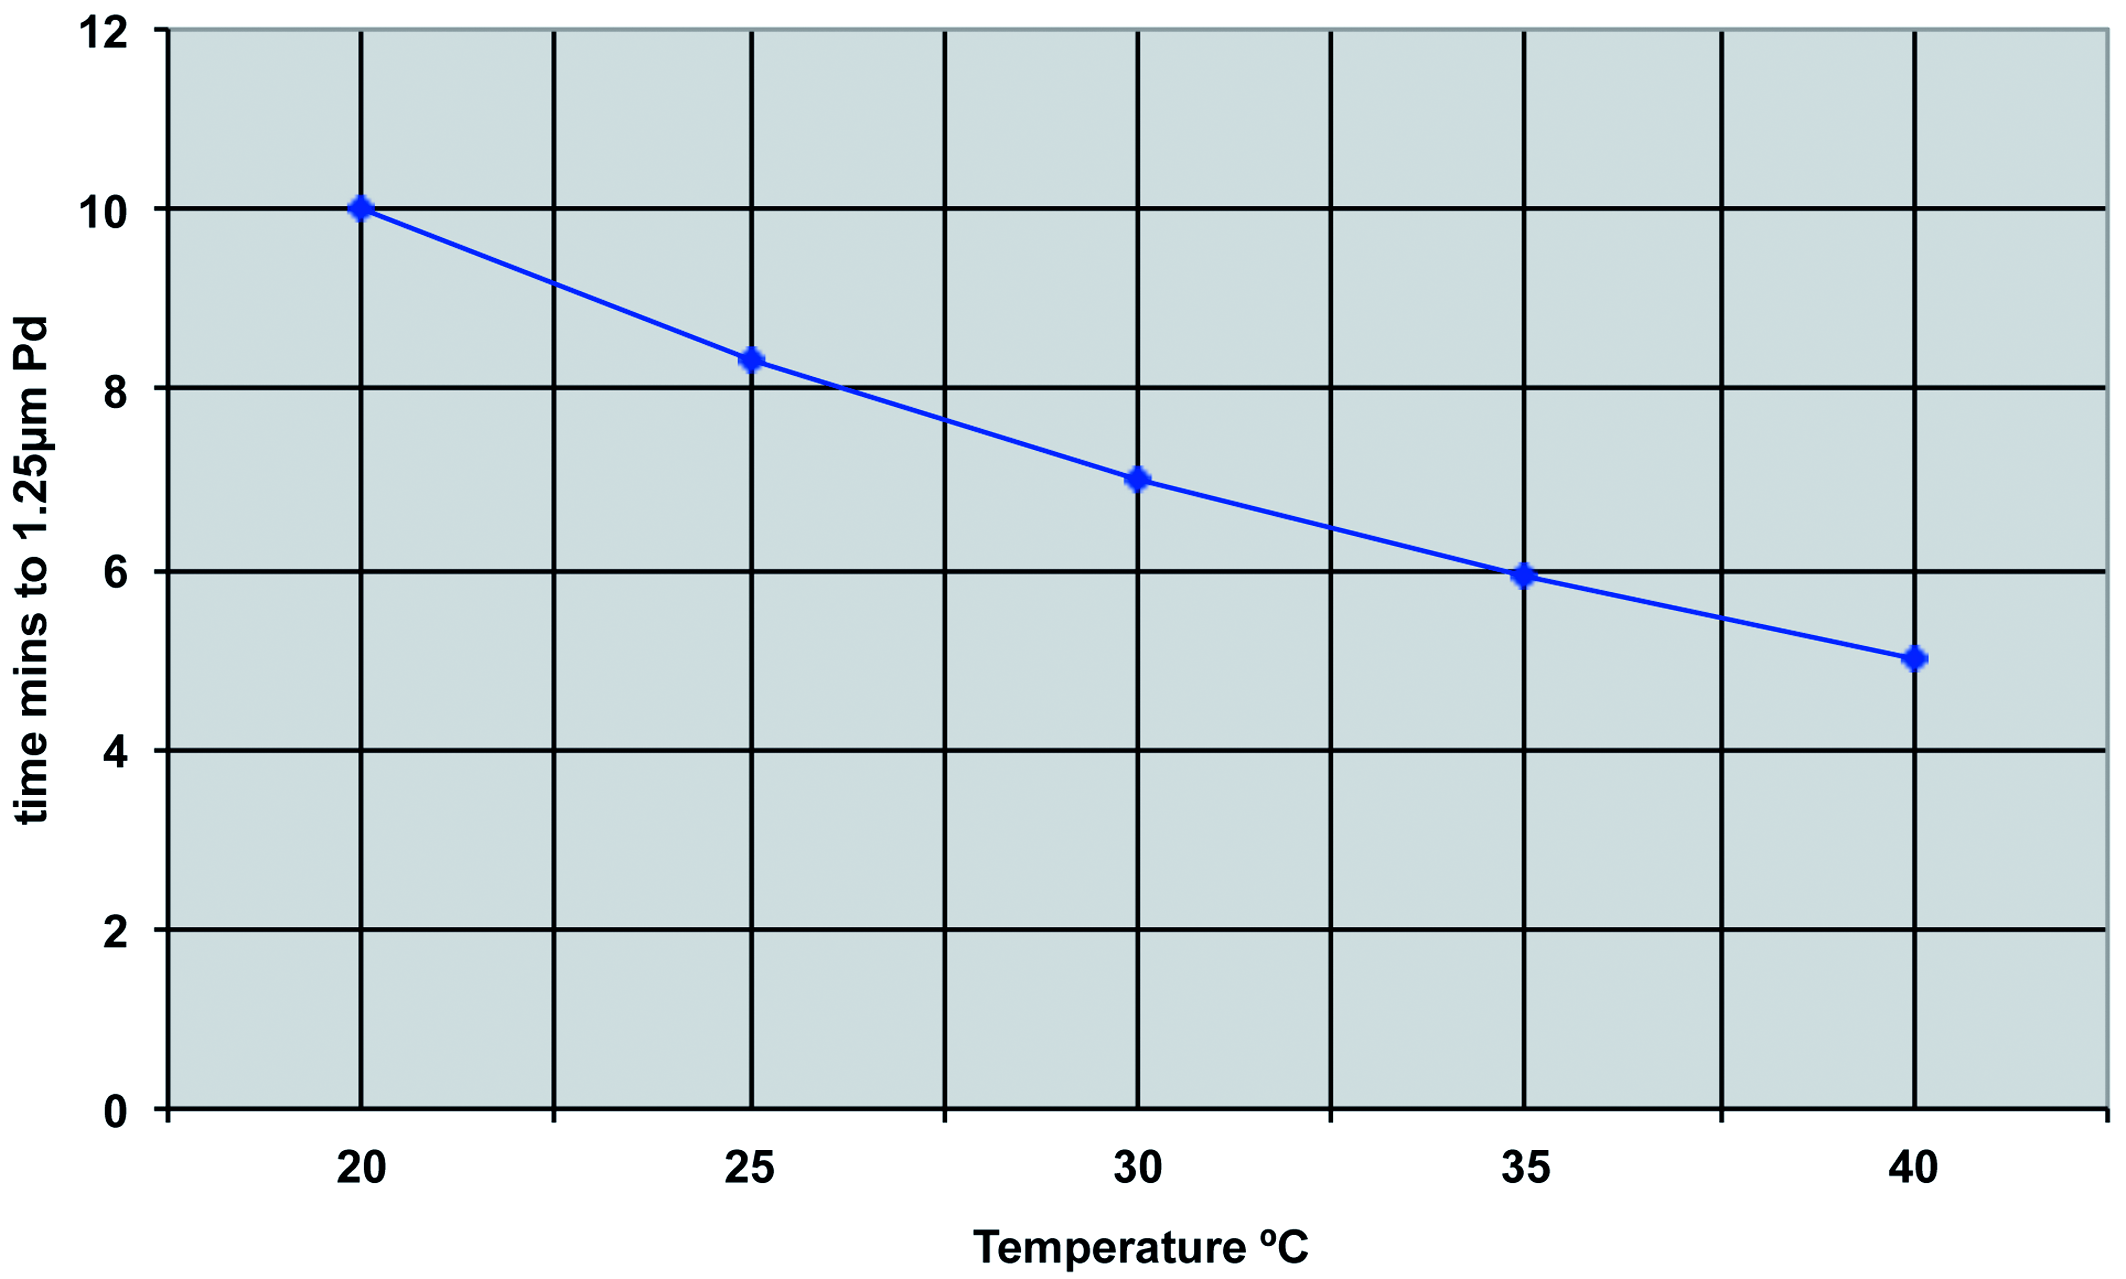 Fig 1: Temperature vs. Time to form 1.25 μm of Displacement Pd on Cu (Pd 5 g/l, HCl 250 mls/l) after Johnson [1]